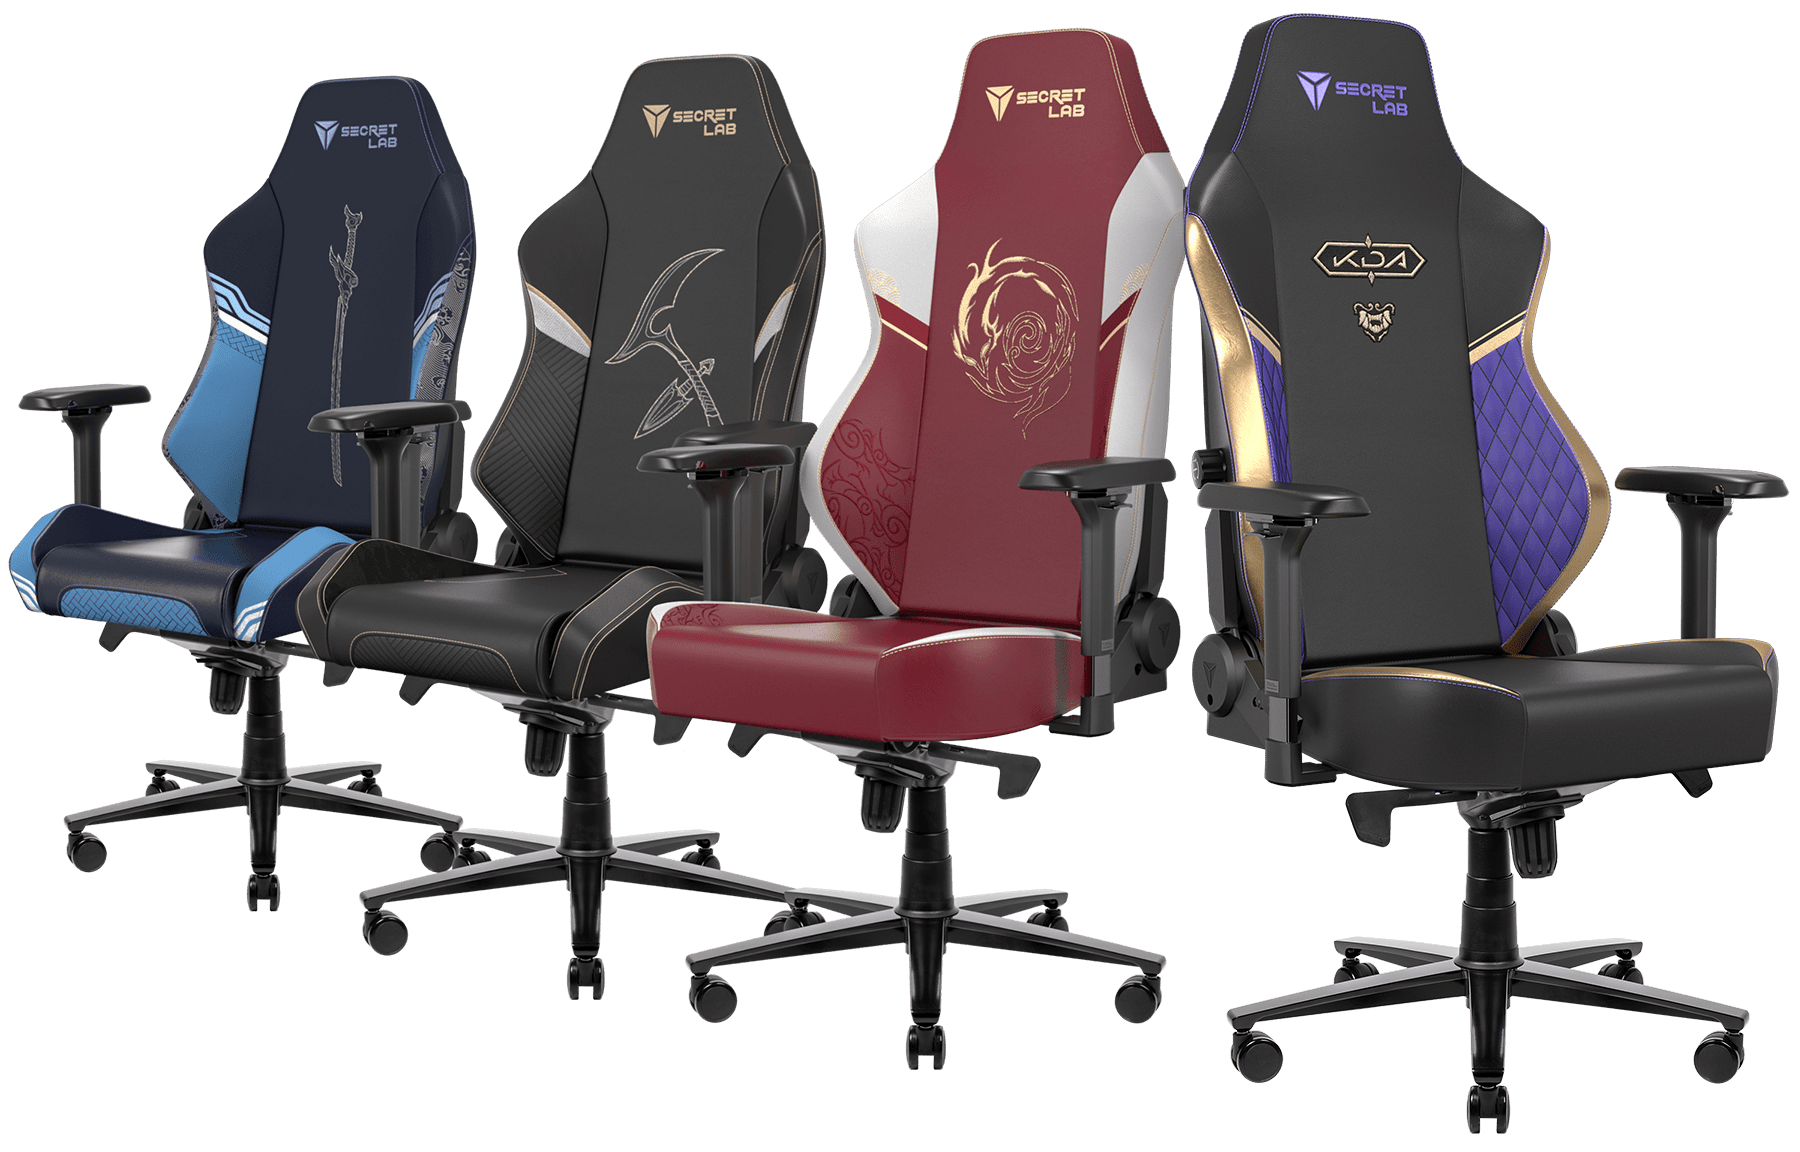 Secretlab x League of Legends Champions Collection - OMEGA and TITAN Special Edition Gaming Chairs